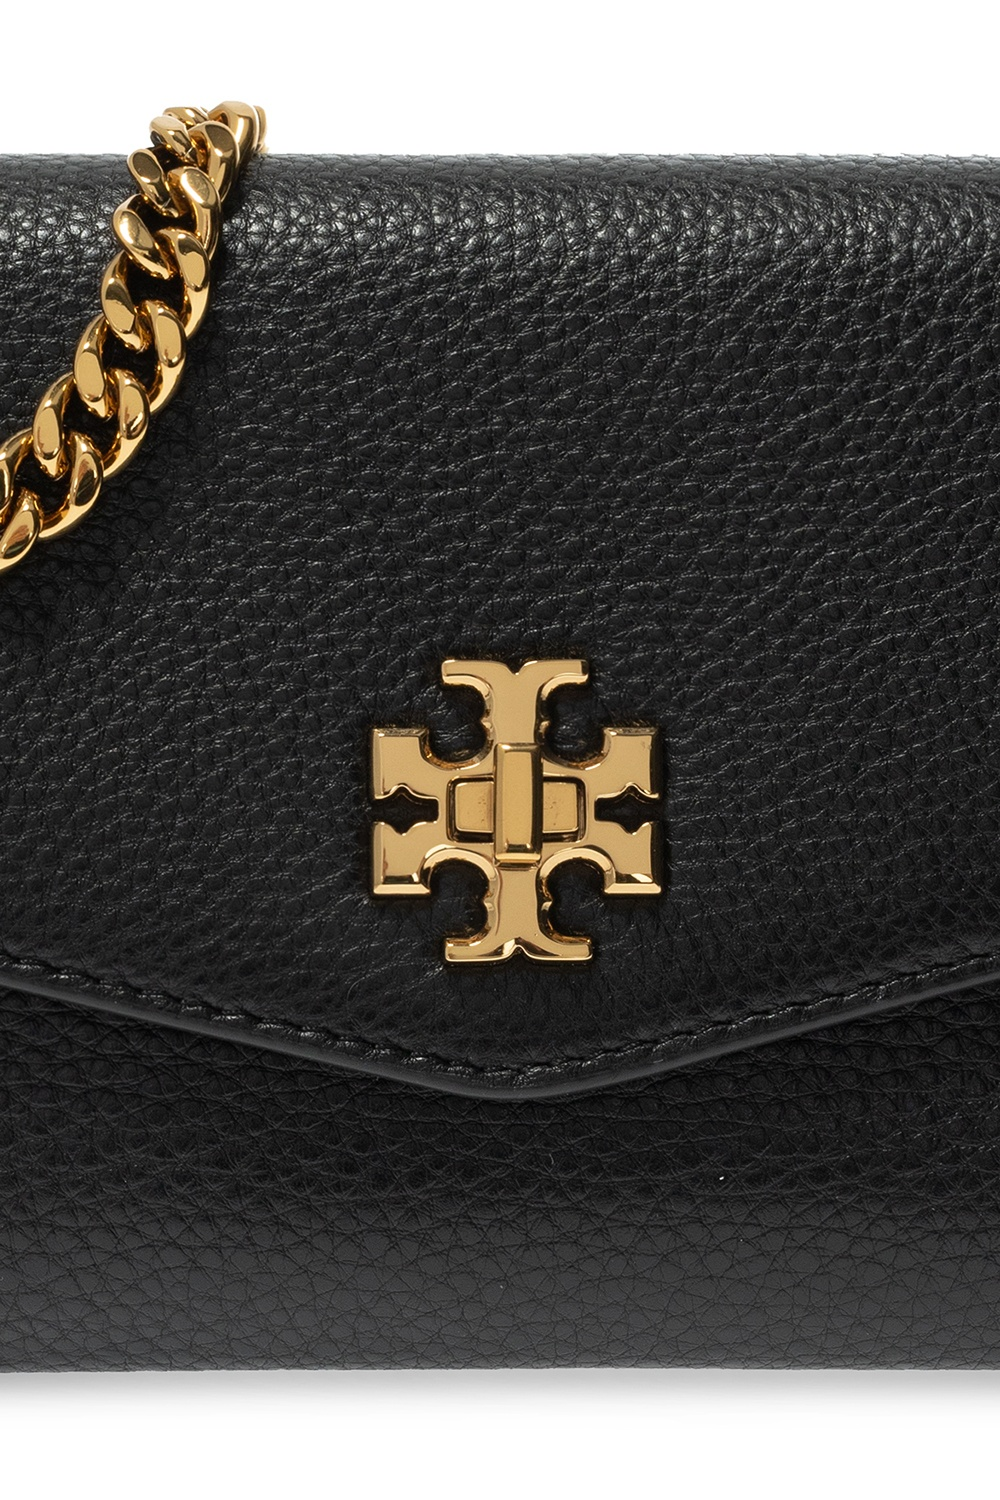 Tory Burch Wallet on chain